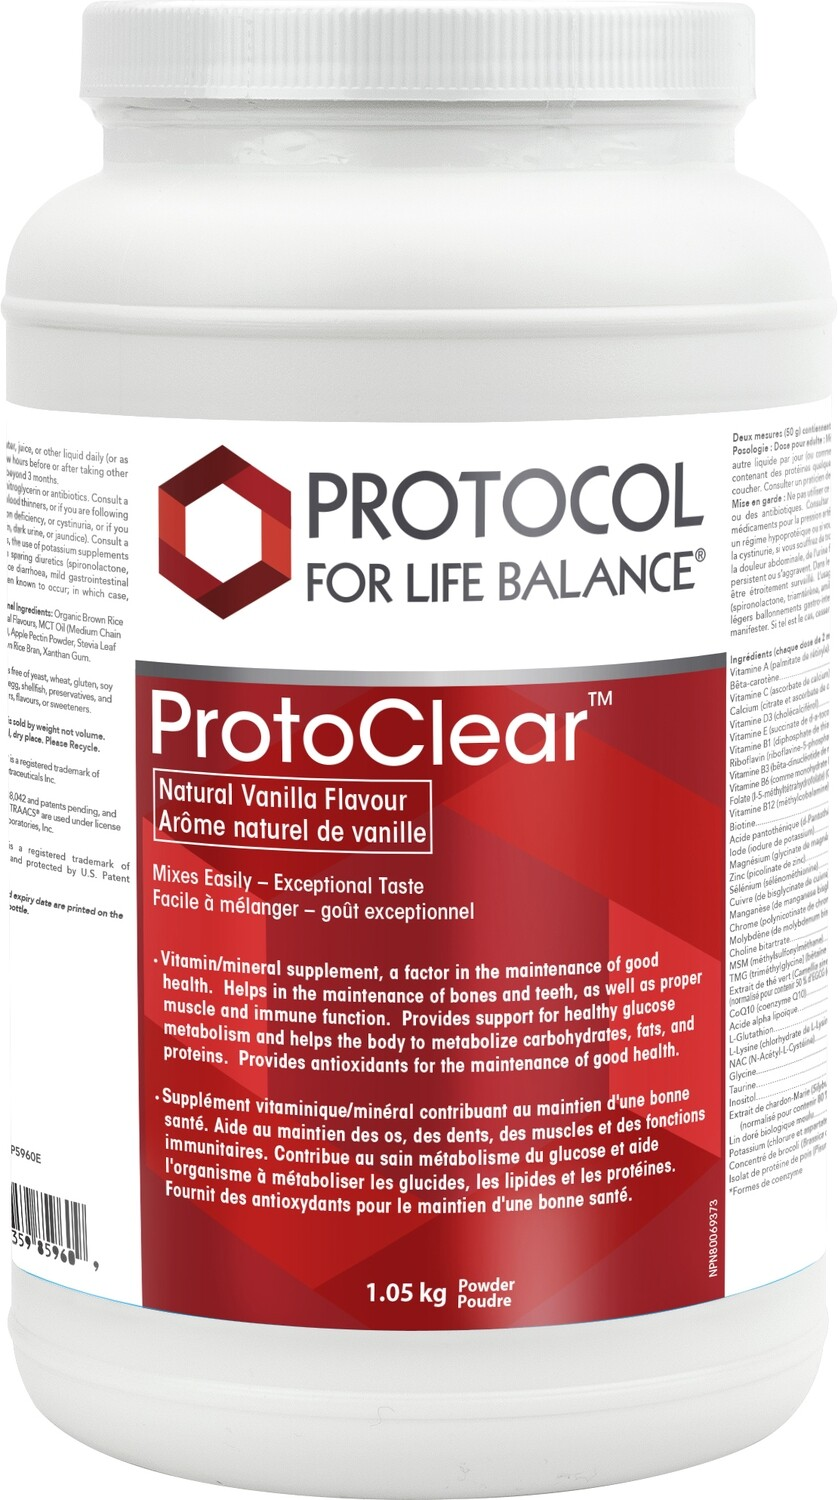 Proto Clear by Protocol for Life Balance